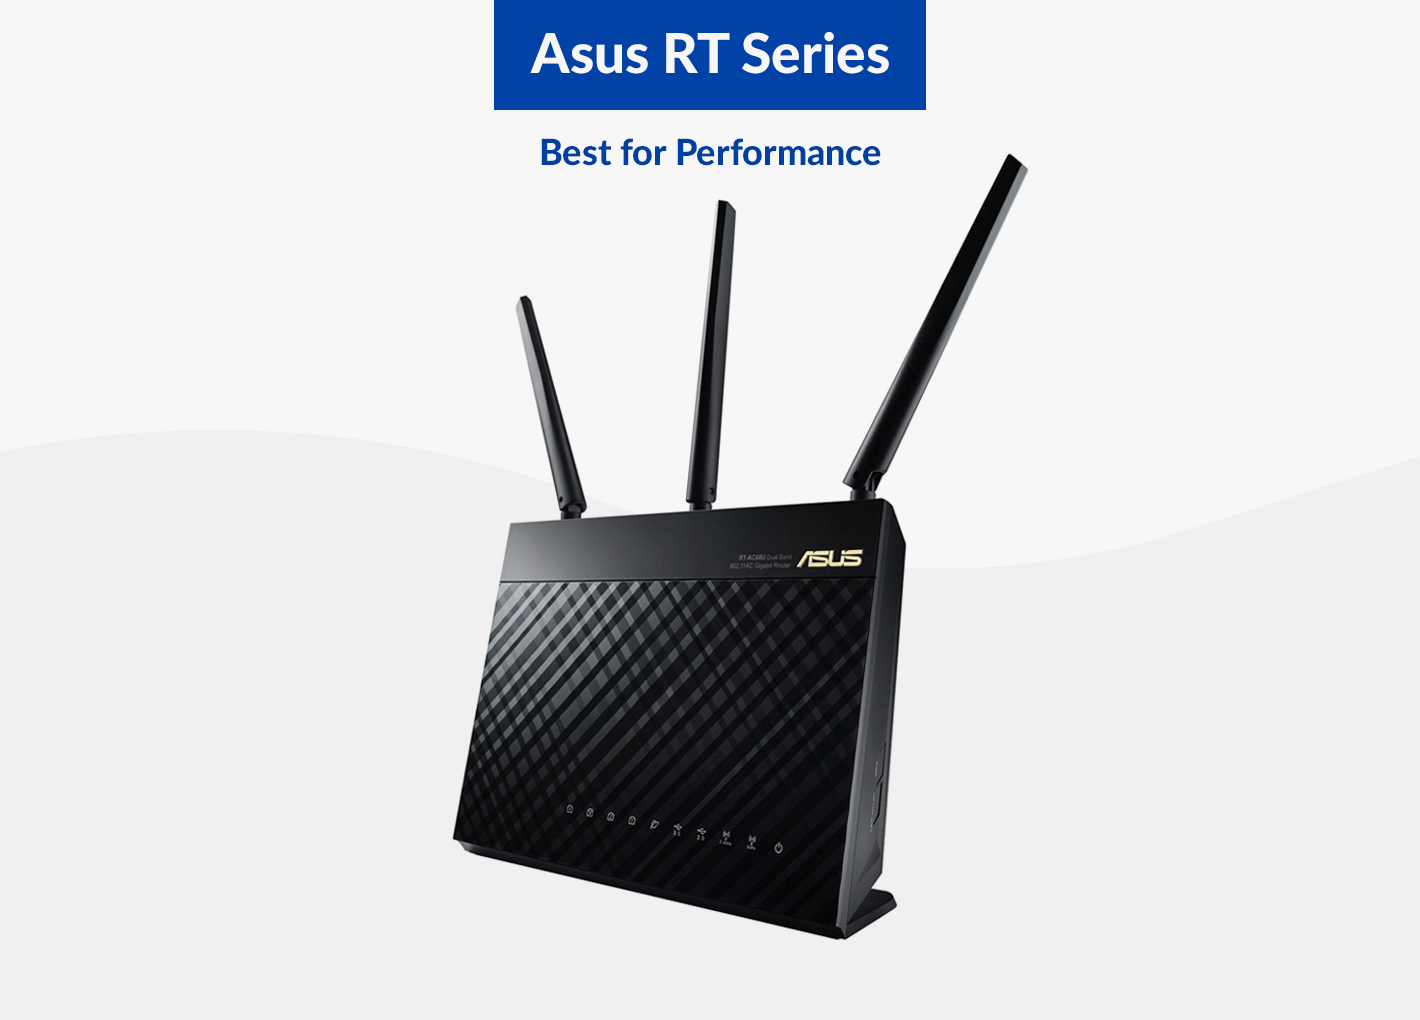 Snag the Best VoIP Router From Our 10-Best List [New]